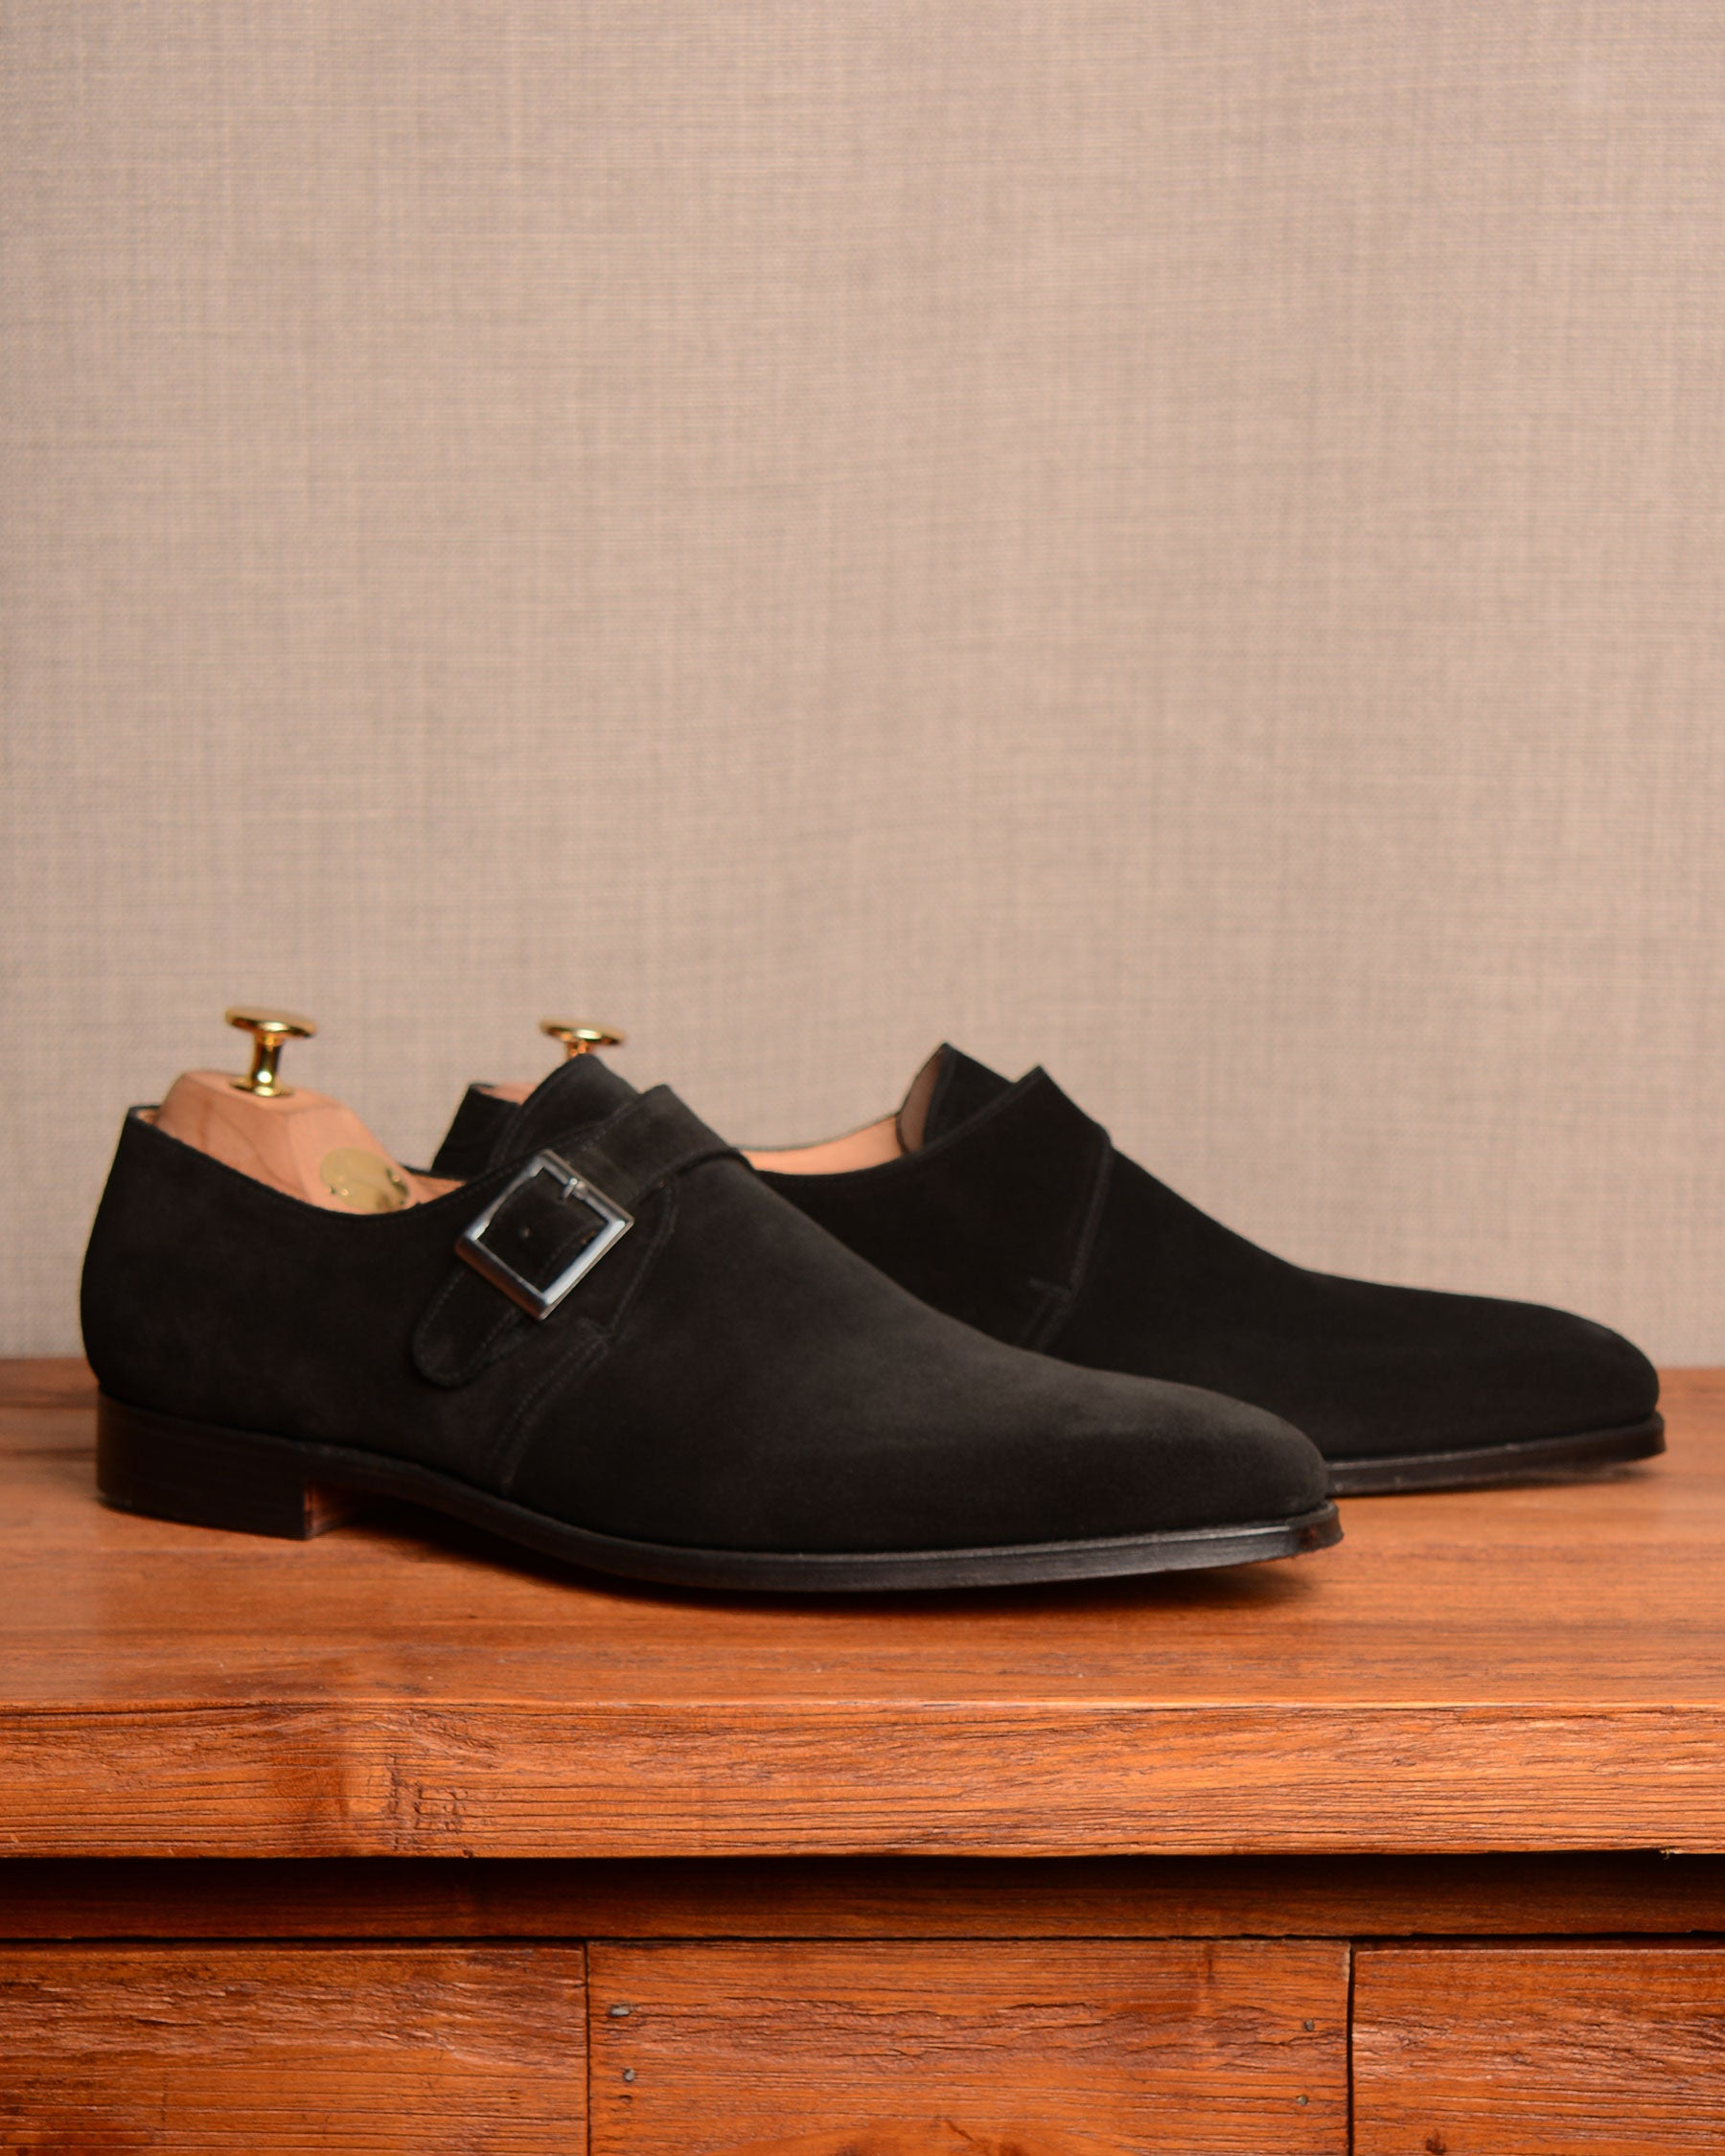 Crockett & Jones Monkton - Black Suede